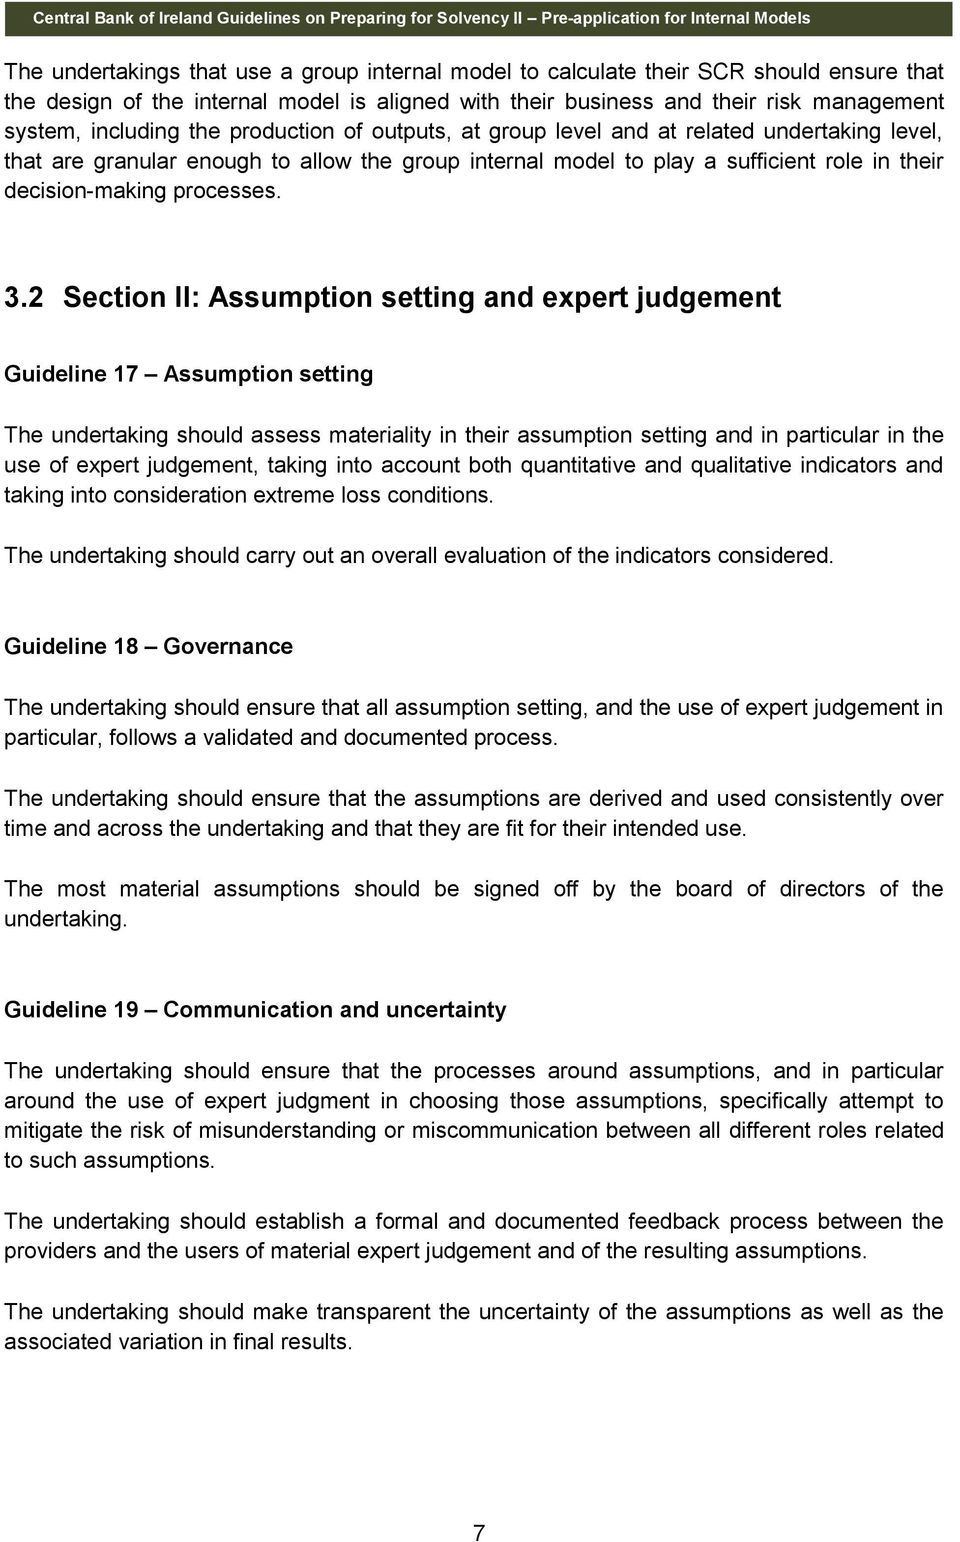 2 Section II: Assumption setting and expert judgement Guideline 17 Assumption setting The undertaking should assess materiality in their assumption setting and in particular in the use of expert